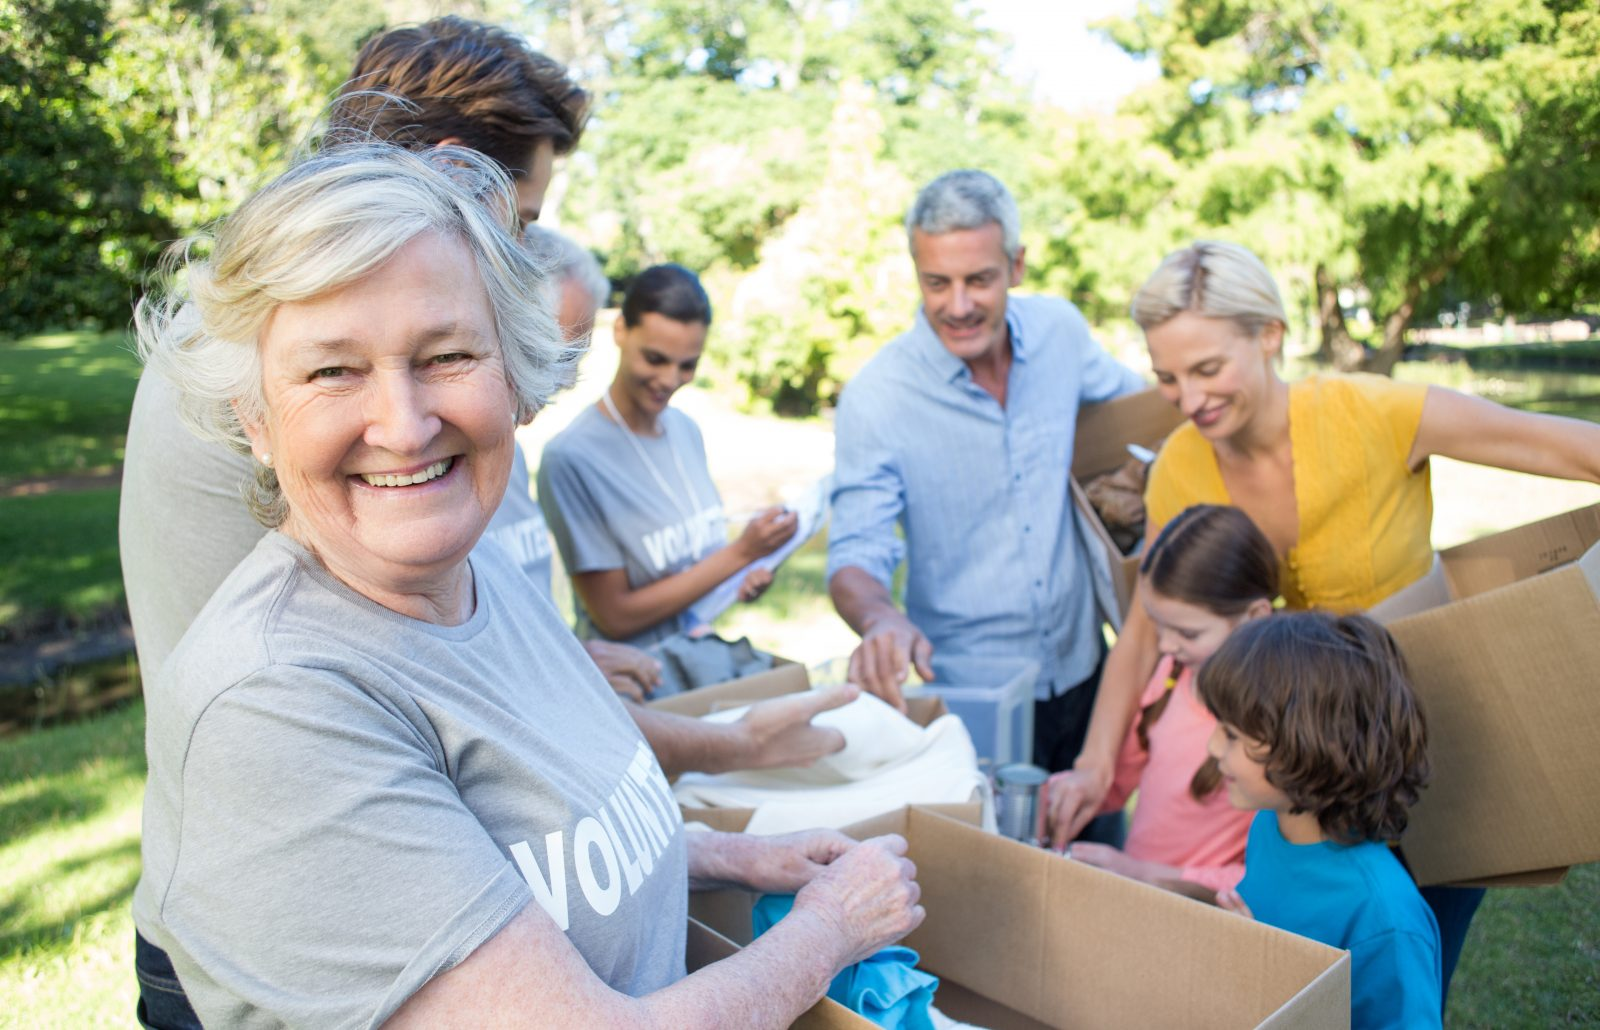 Volunteer Opportunities at Allegheny Lutheran Social Ministries